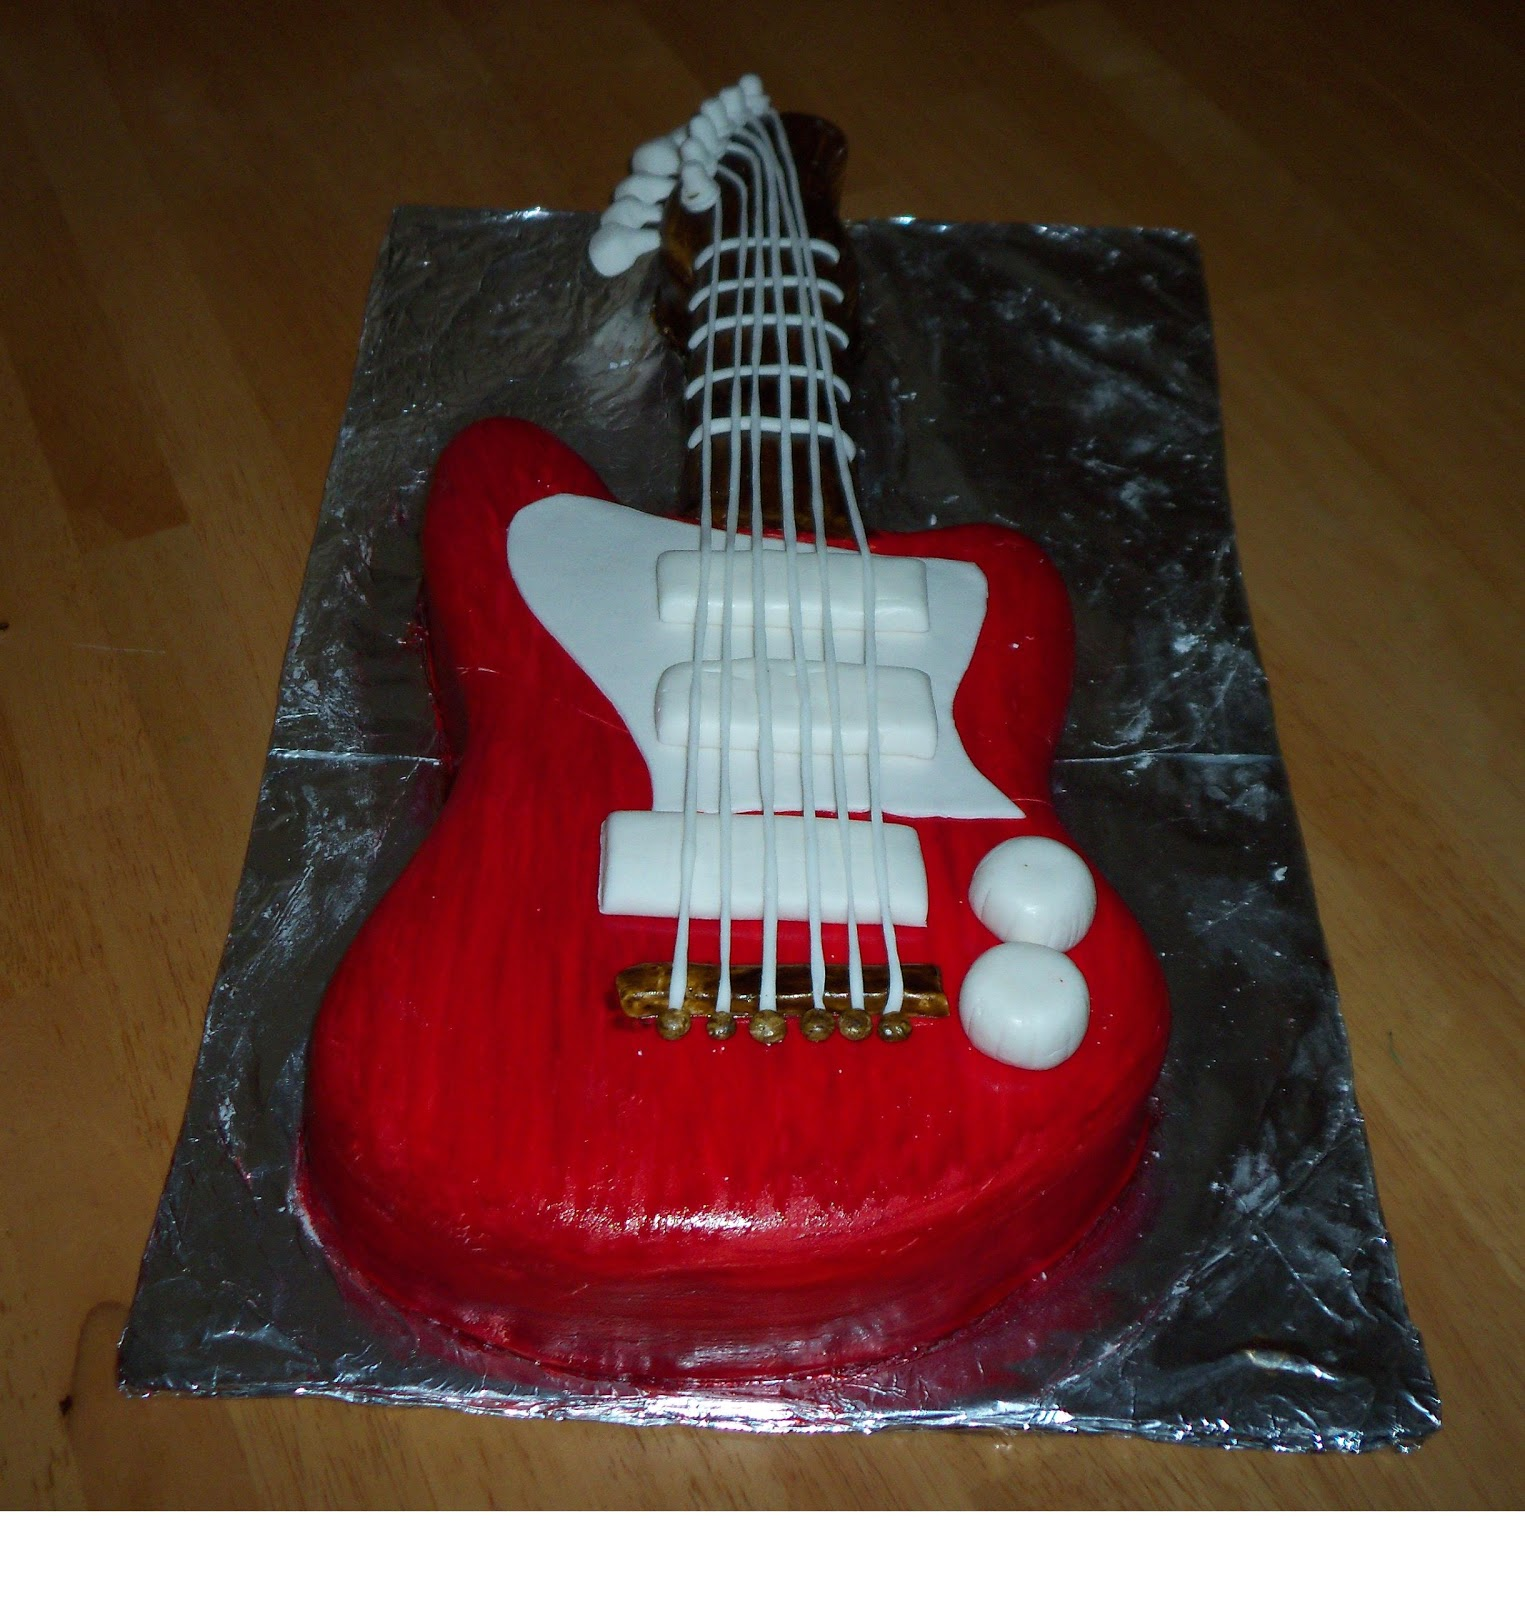 guitar templates for cakes - 1525px